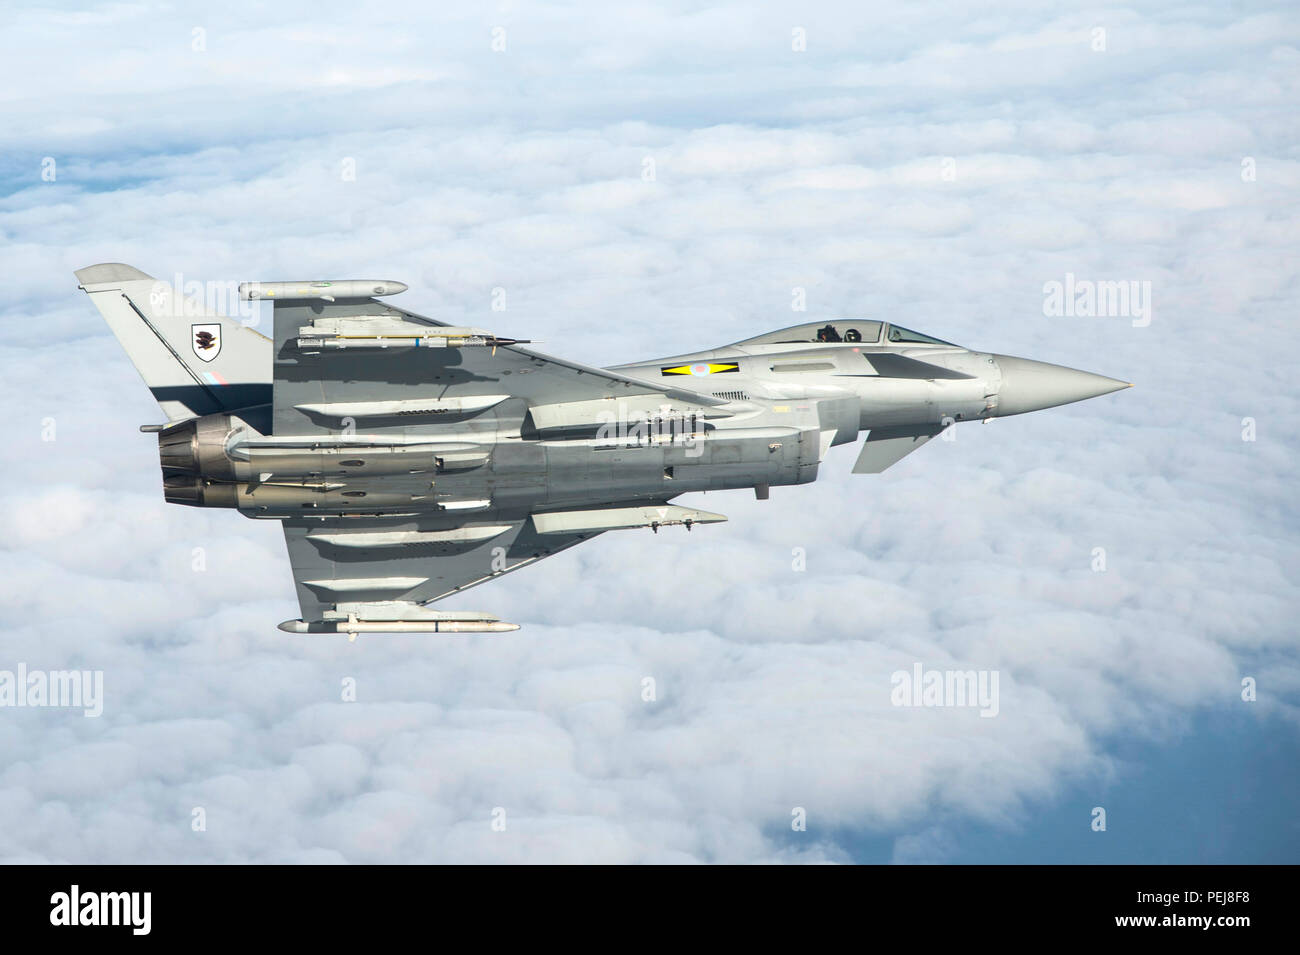 A British Royal Air Force Typhoon flies as part of the inaugural Trilateral Exercise held at Langley Air Force Base, Va., Dec. 7, 2015. The Typhoon provides the RAF with a highly capable agile multi-role combat aircraft, capable of being deployed in full air operations, such as air policing, peace support and high intensity conflict. (U.S. Air Force photo by Senior Airman Kayla Newman) - Stock Image